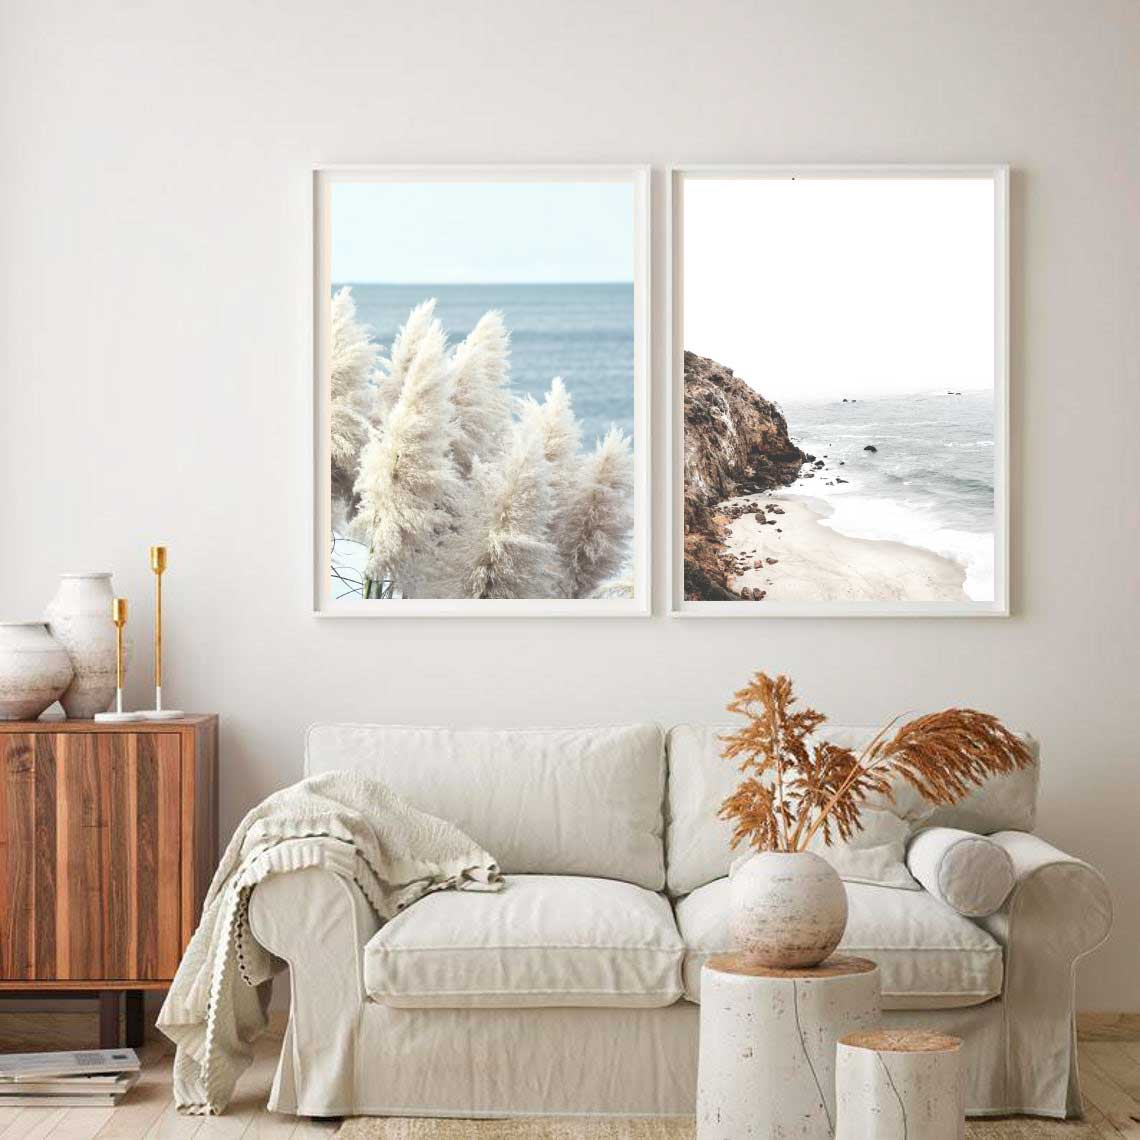 Sea Cliffs+ Pampas by the Sea Set of 2